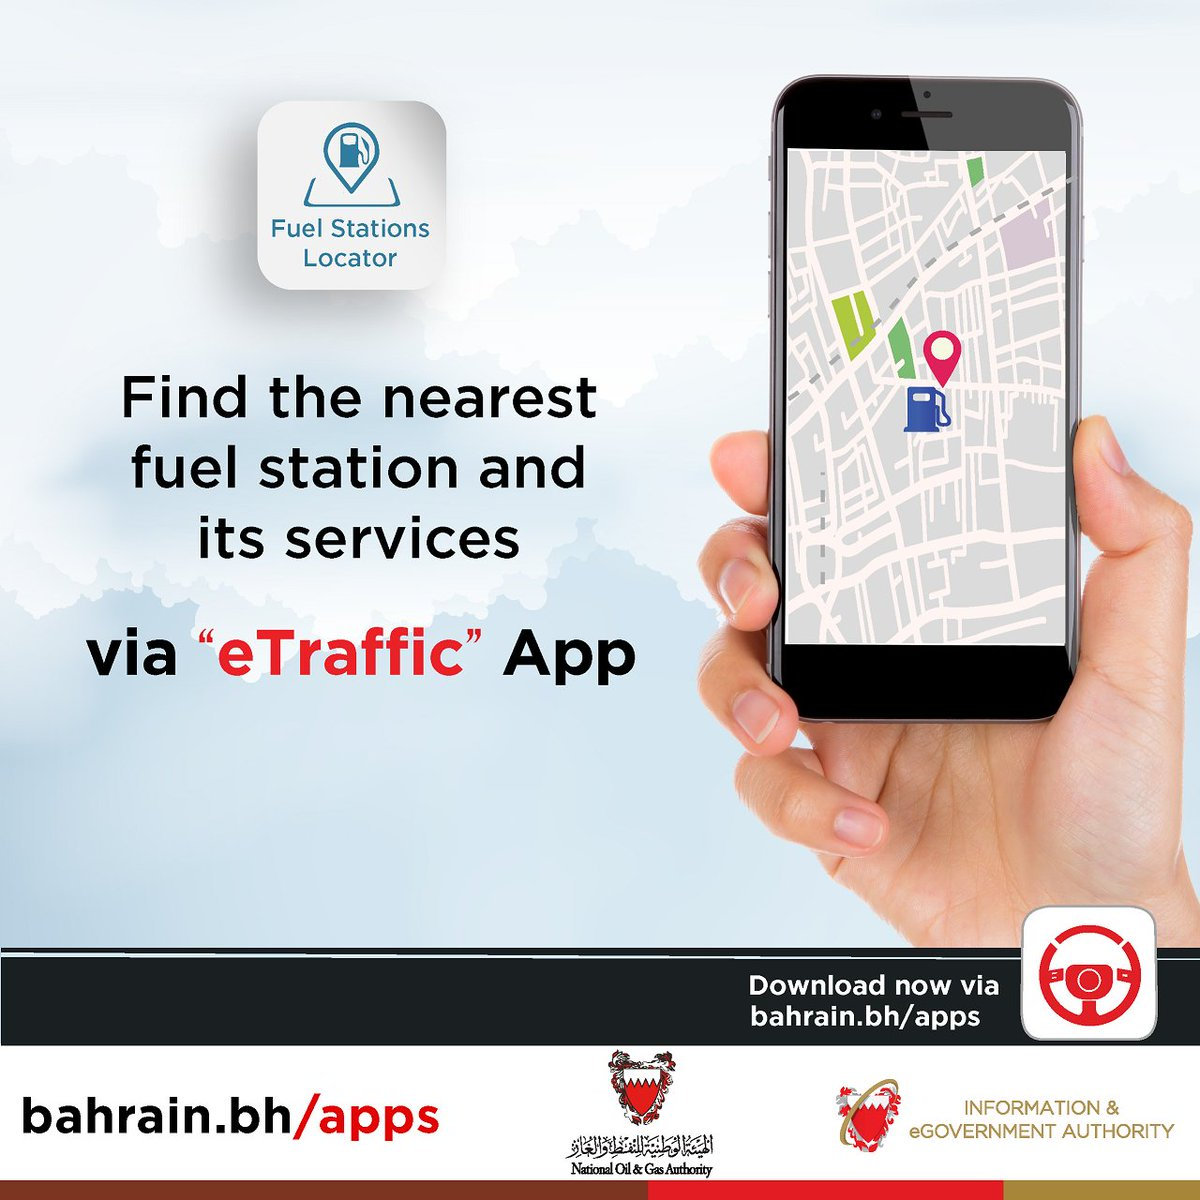 Nearest Fuel Station >> Iga Bahrain On Twitter Looking For A Fuel Station Nearby